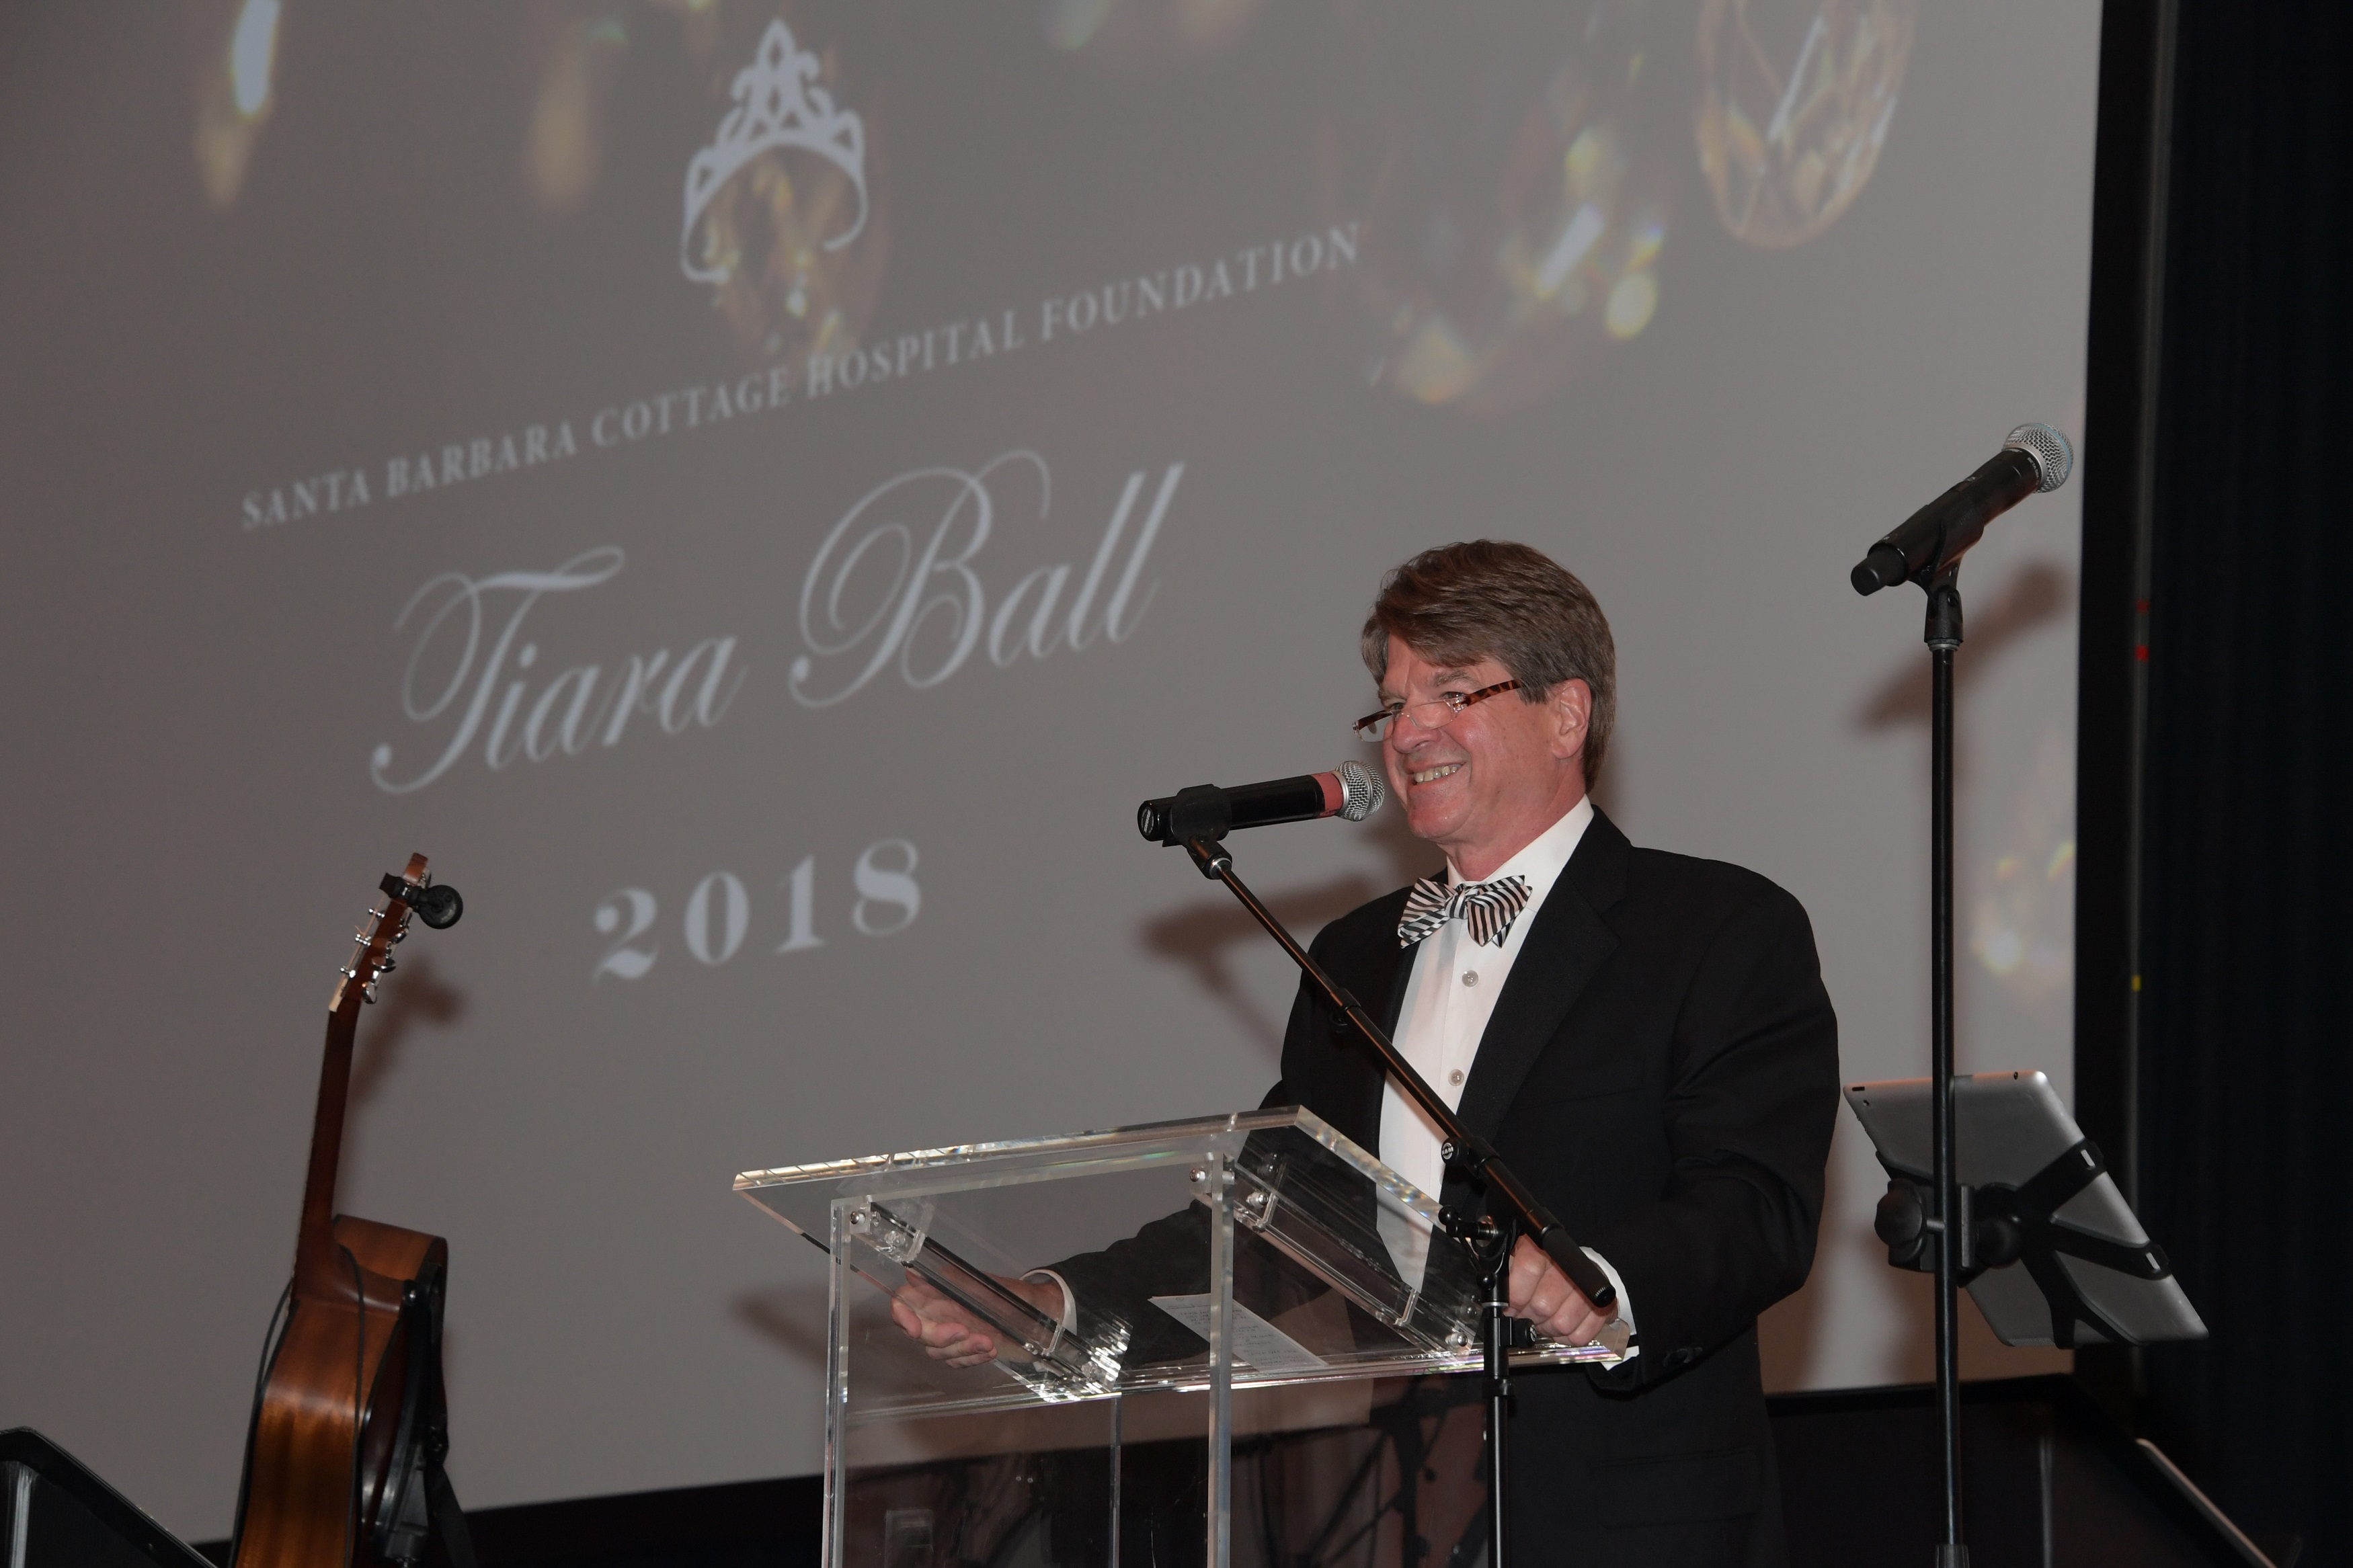 Cottage Health Board Chair Steven Ainsley speaks during the Tiara Ball.